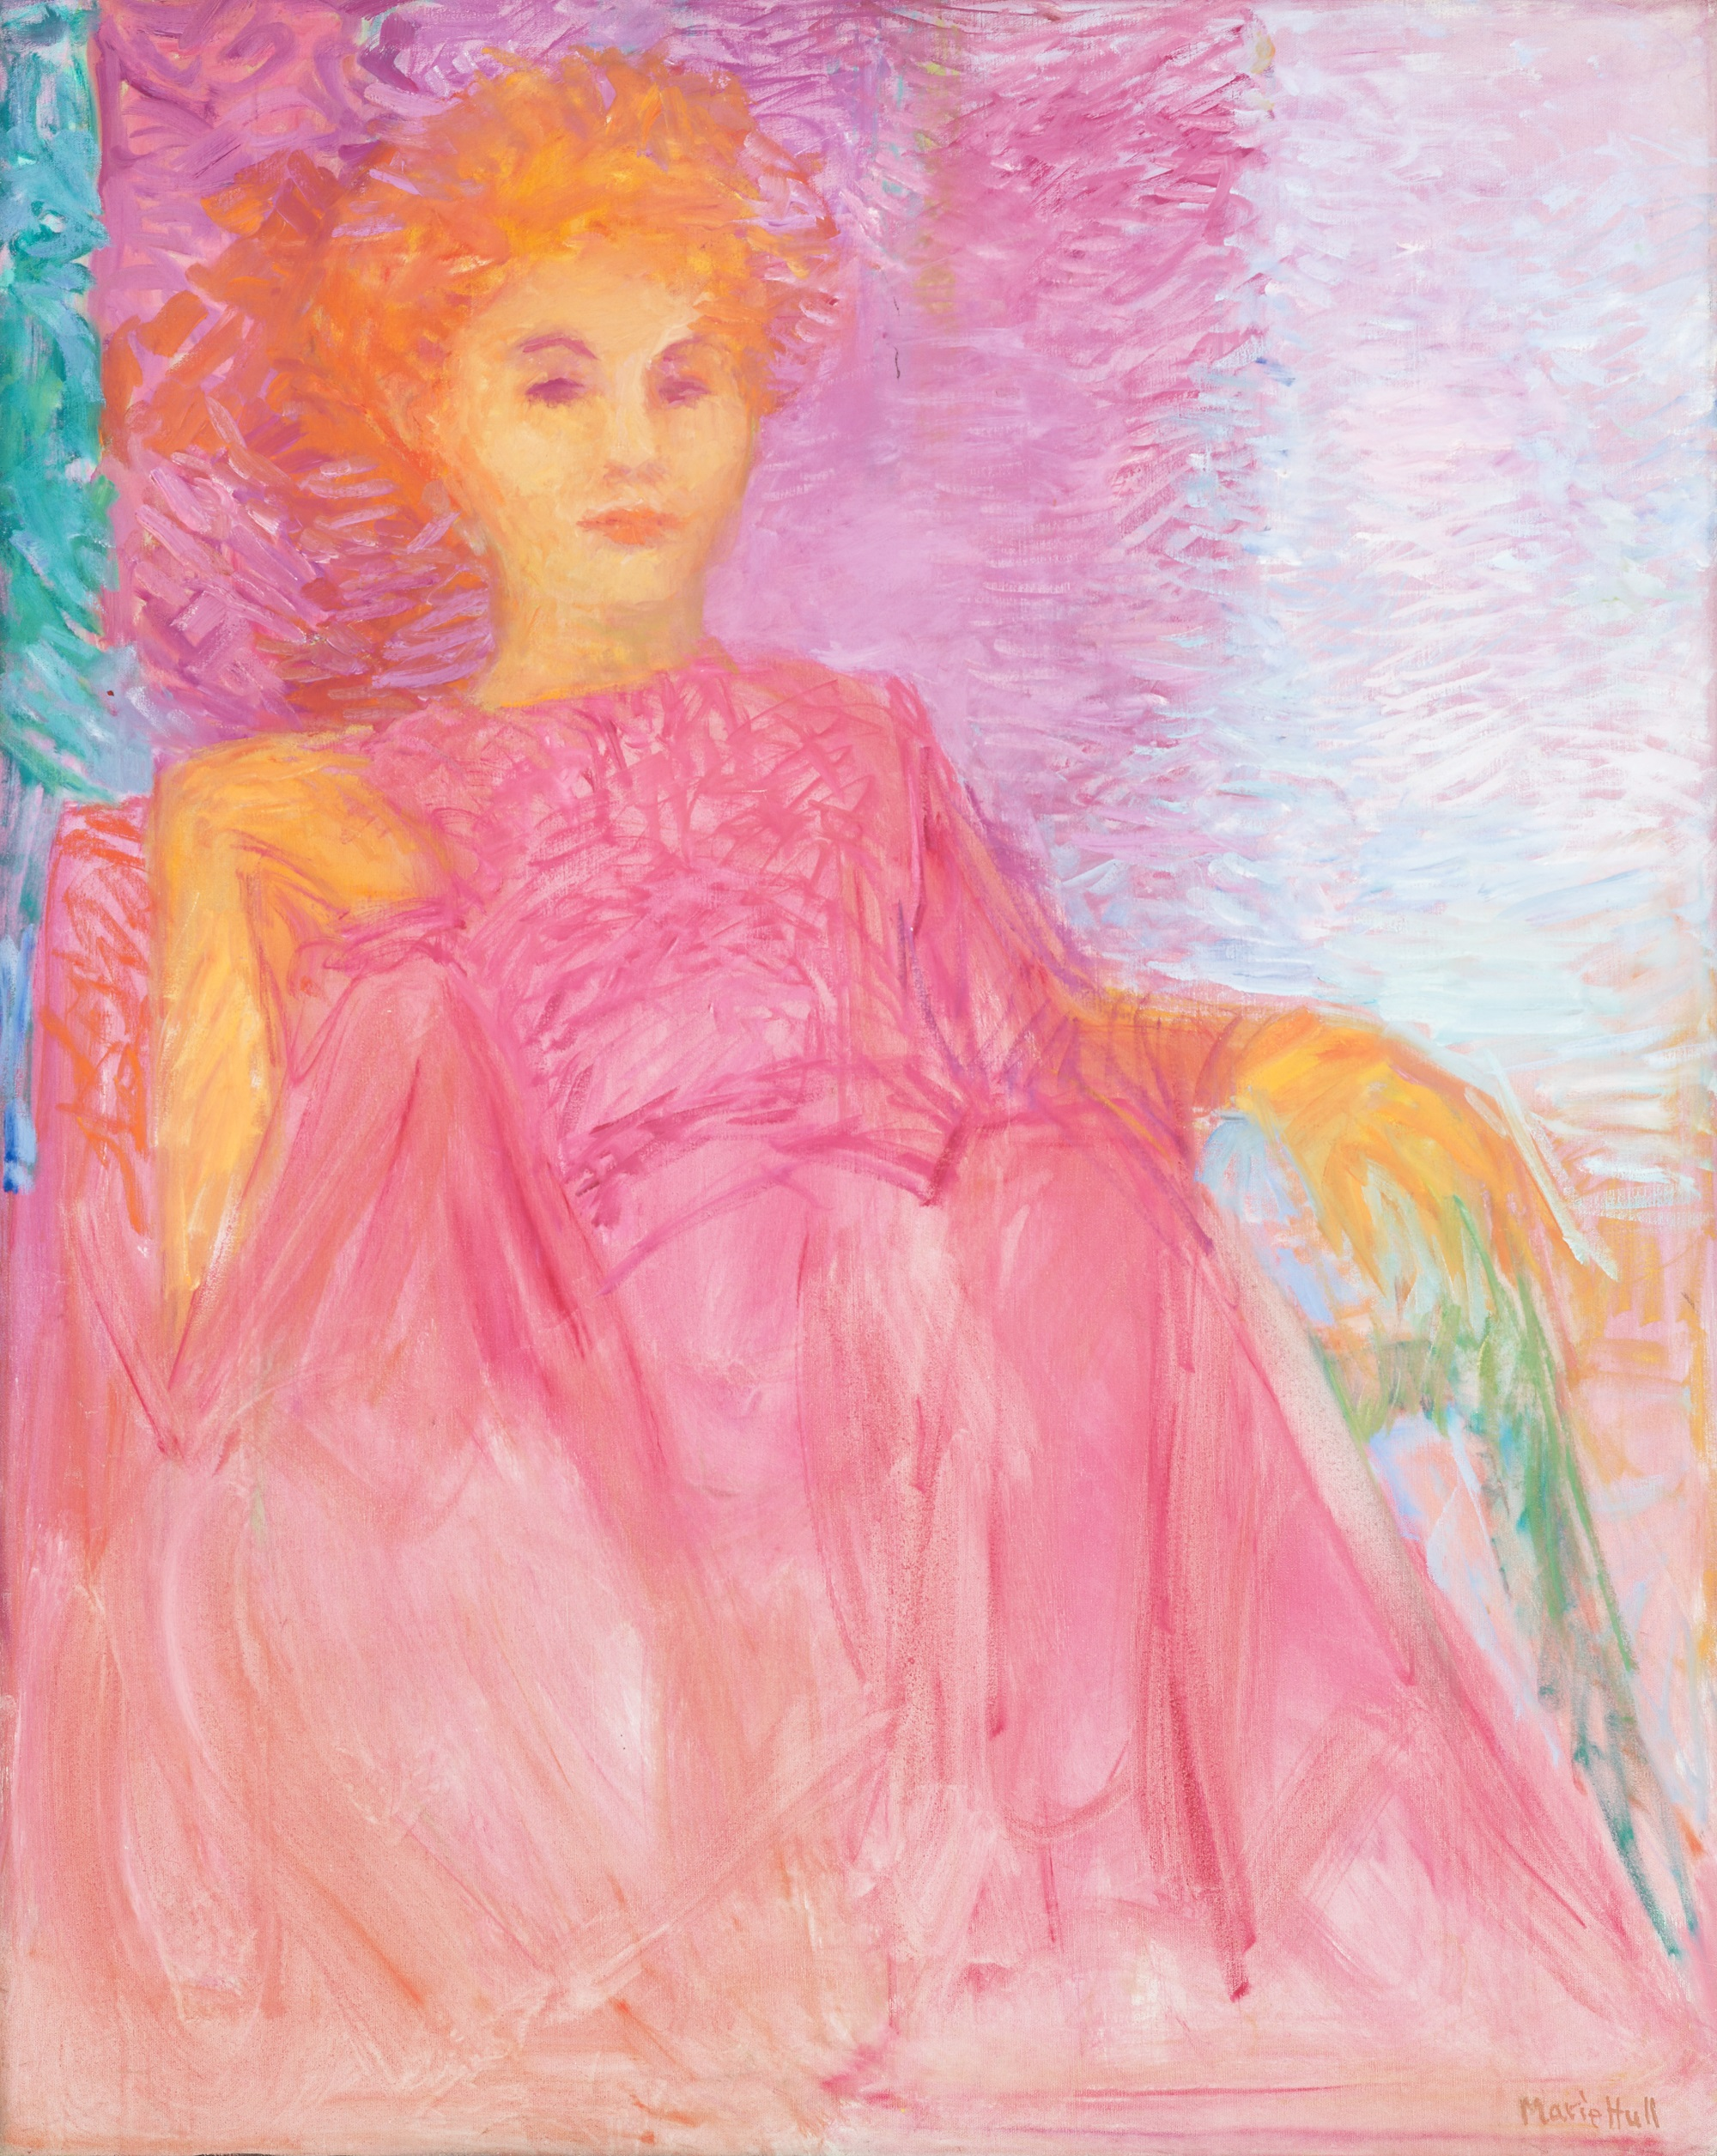 Marie Hull (1890-1980), The Pink Lady, 1967. oil on canvas. Collection of Mississippi Museum of Art. Gift of the artist.